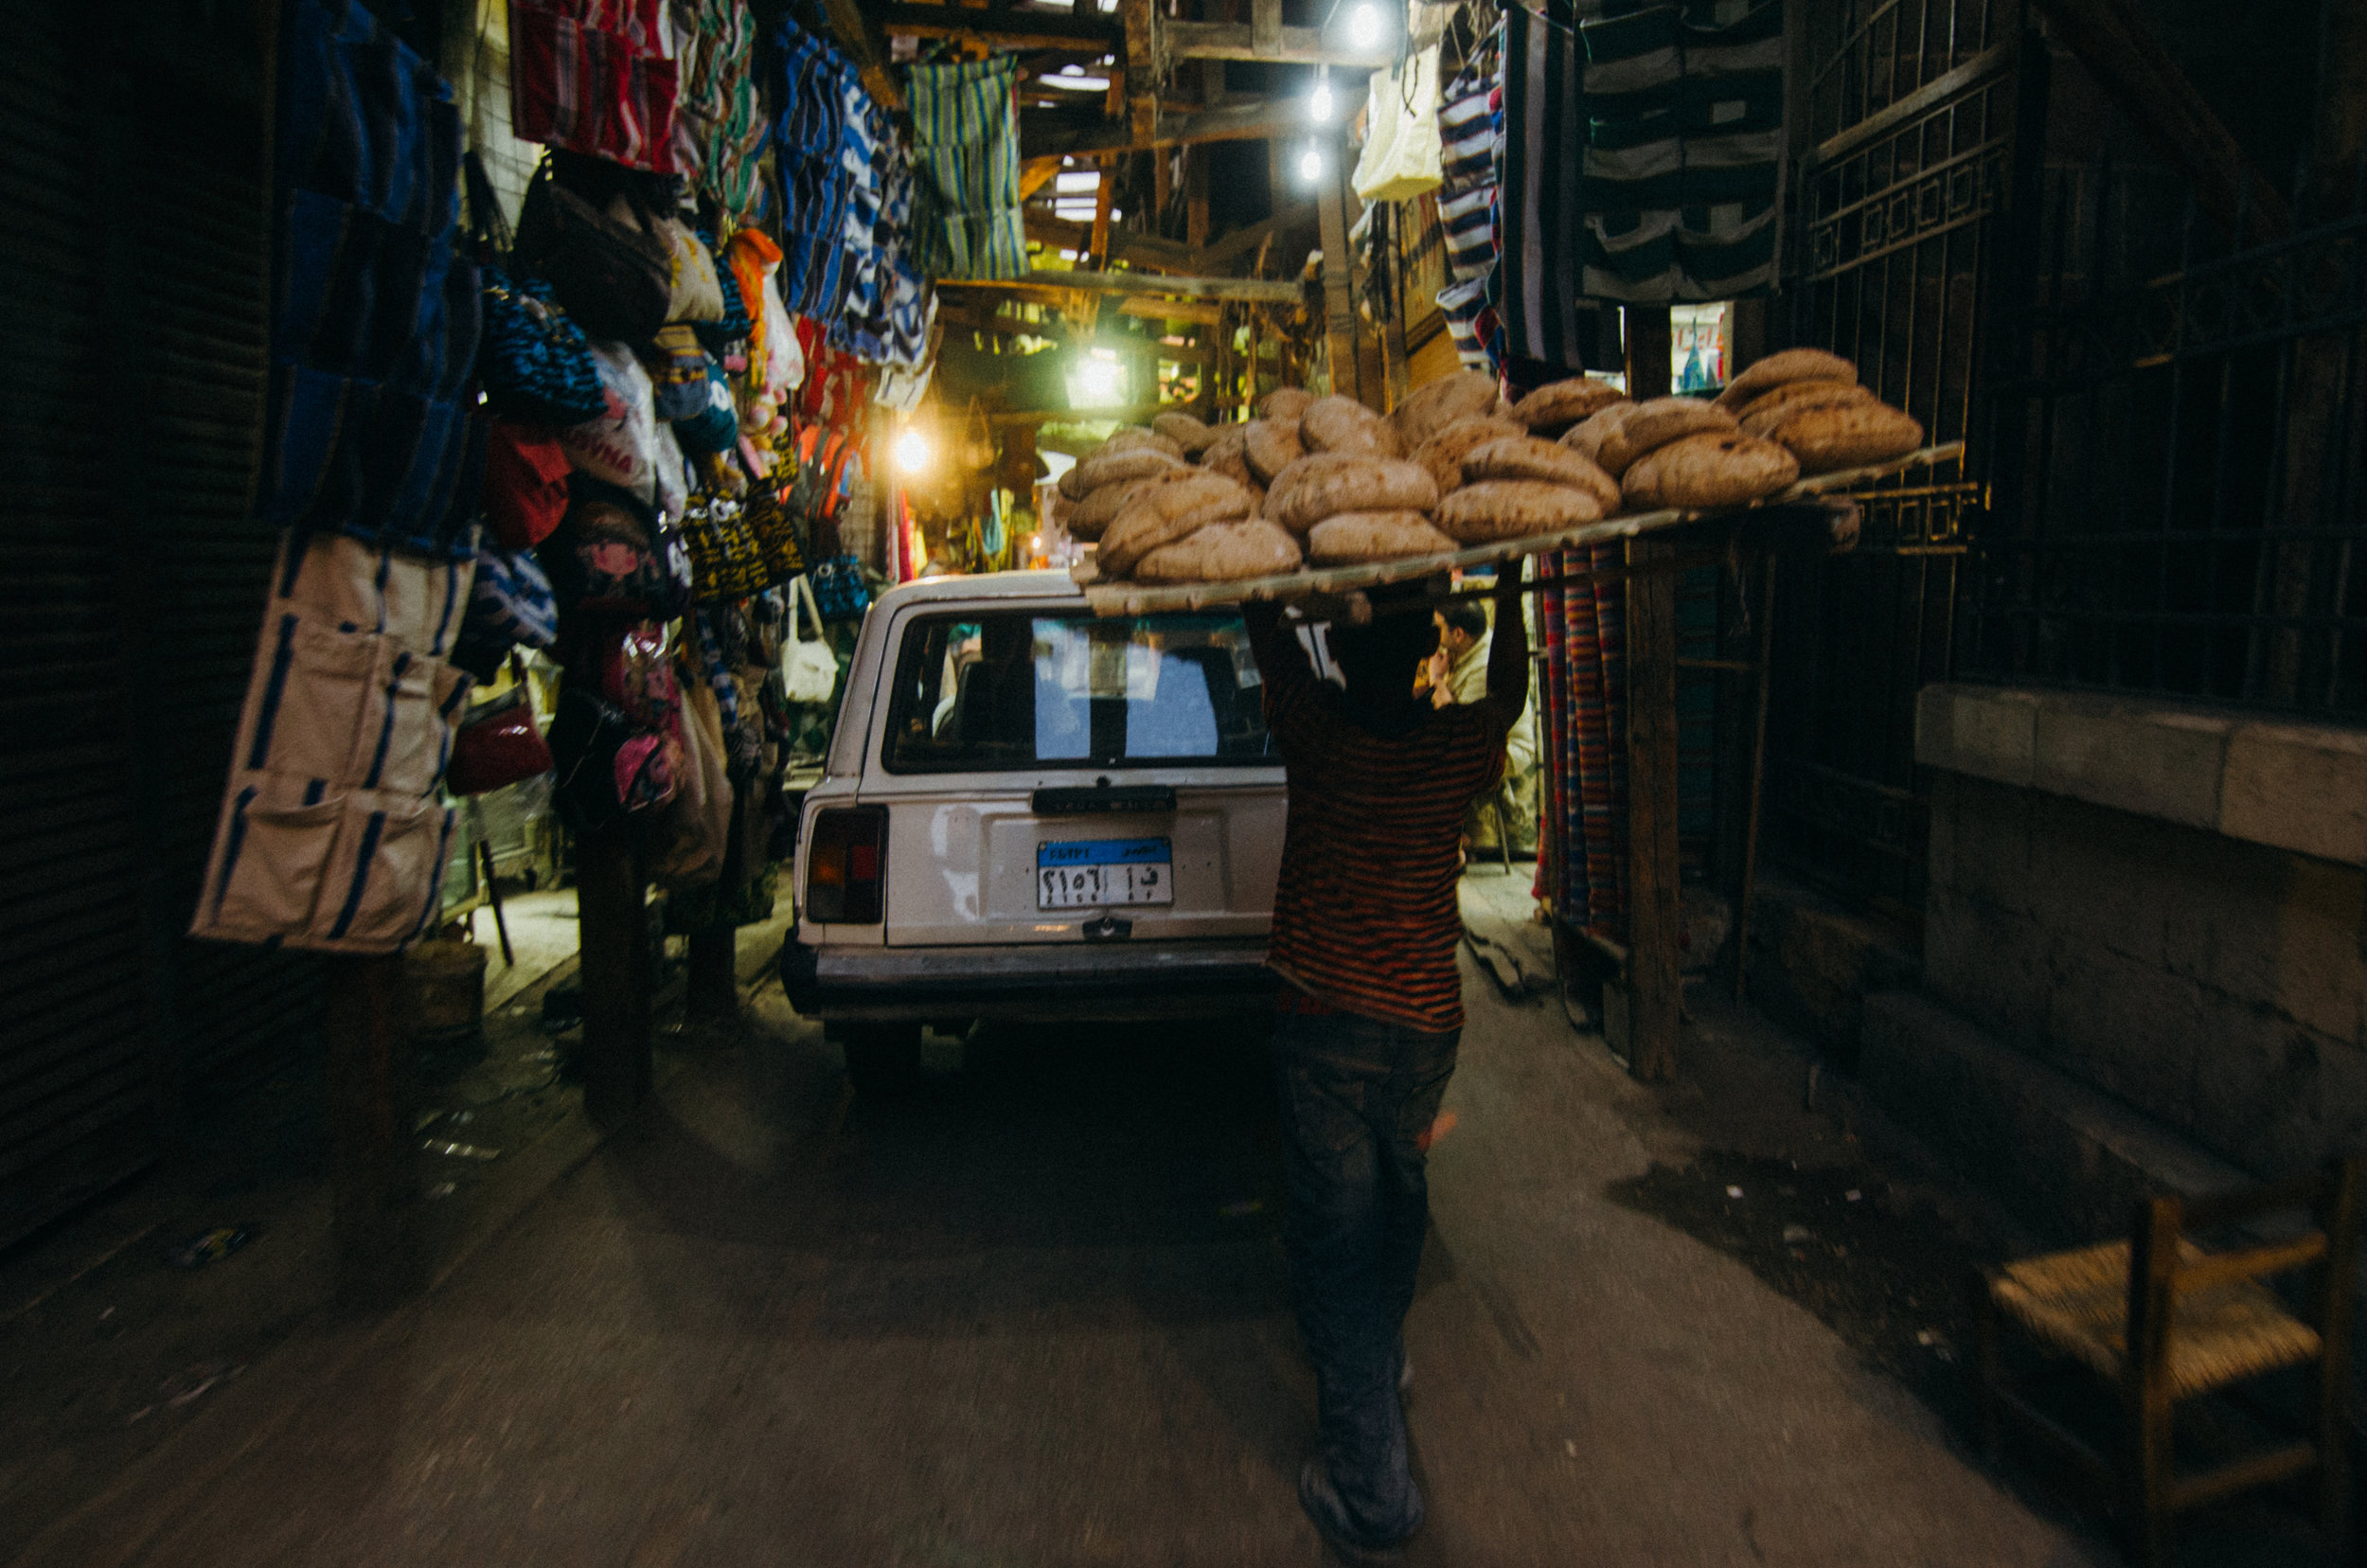 The bread is delivered fresh every day